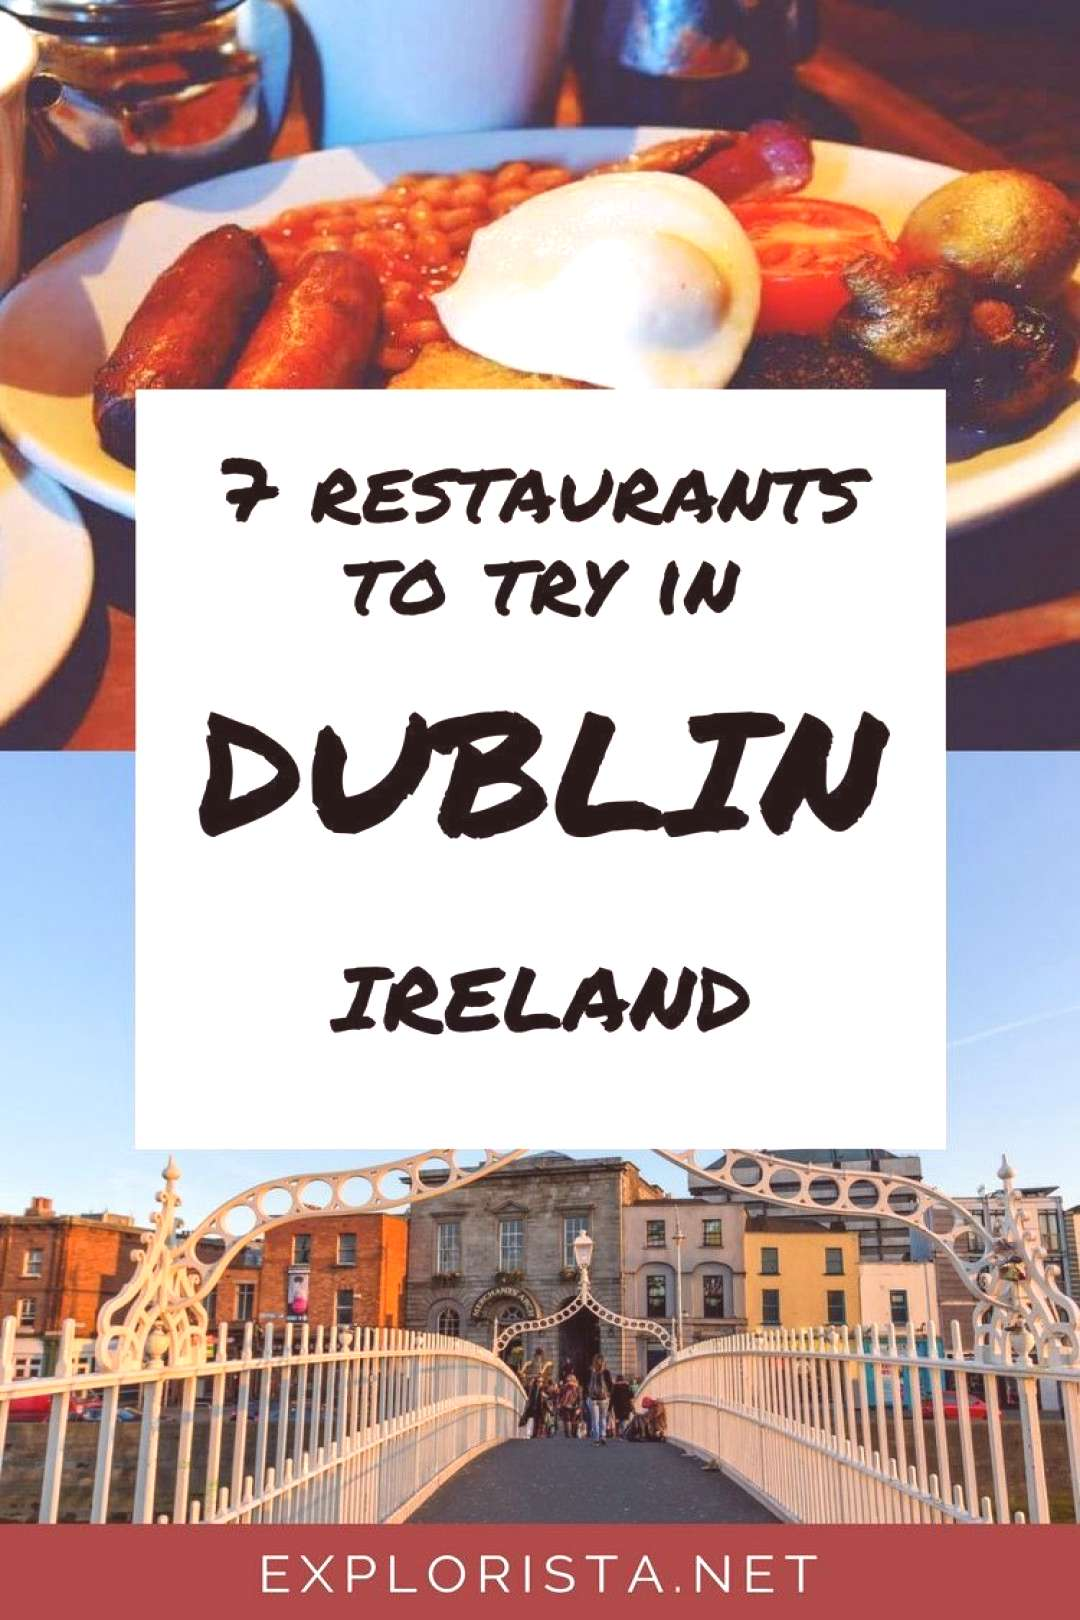 Dublin: 7 great & cheap restaurants -  Check out this guide for the best budget-friendly and delici